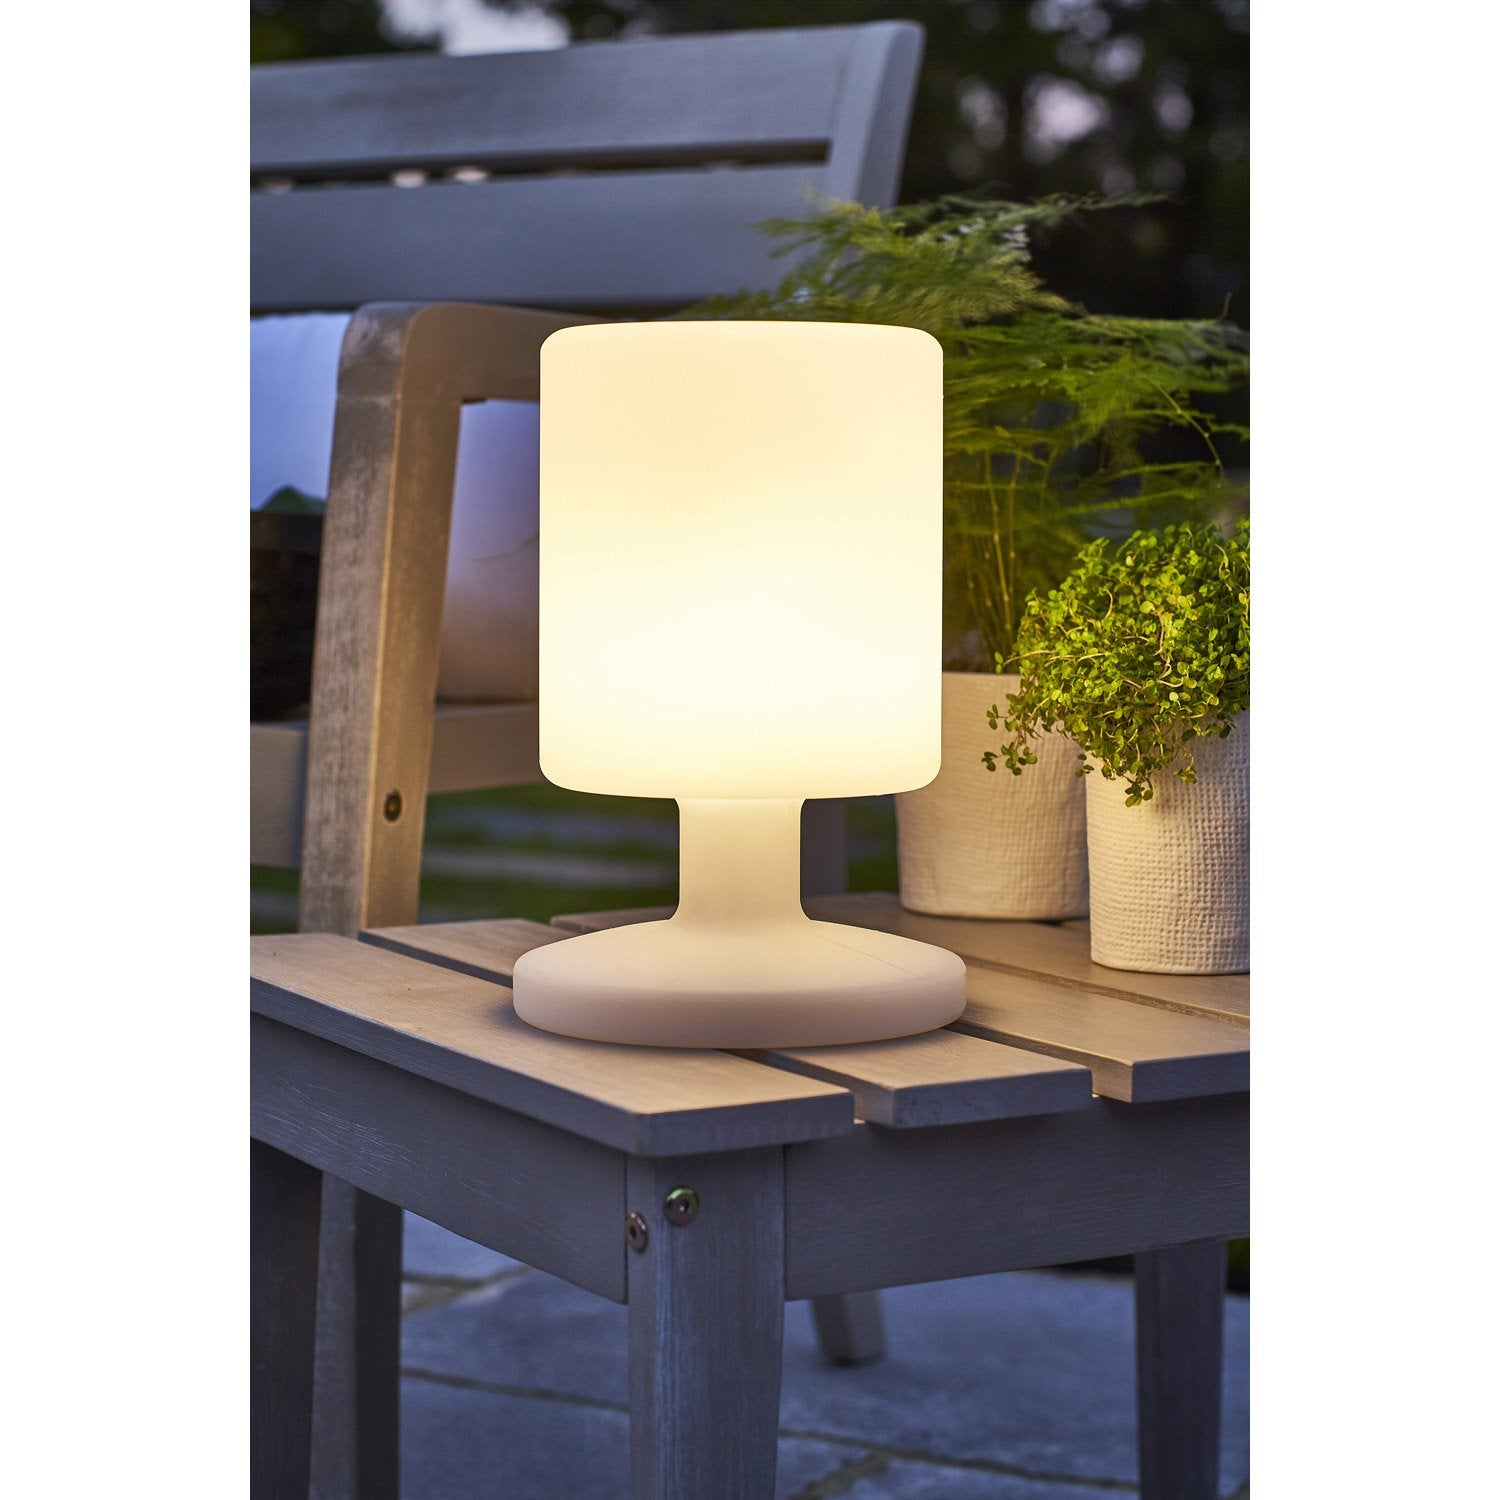 lampe de table ext rieure led integrada 5 w 130 lm blanc leroy merlin. Black Bedroom Furniture Sets. Home Design Ideas